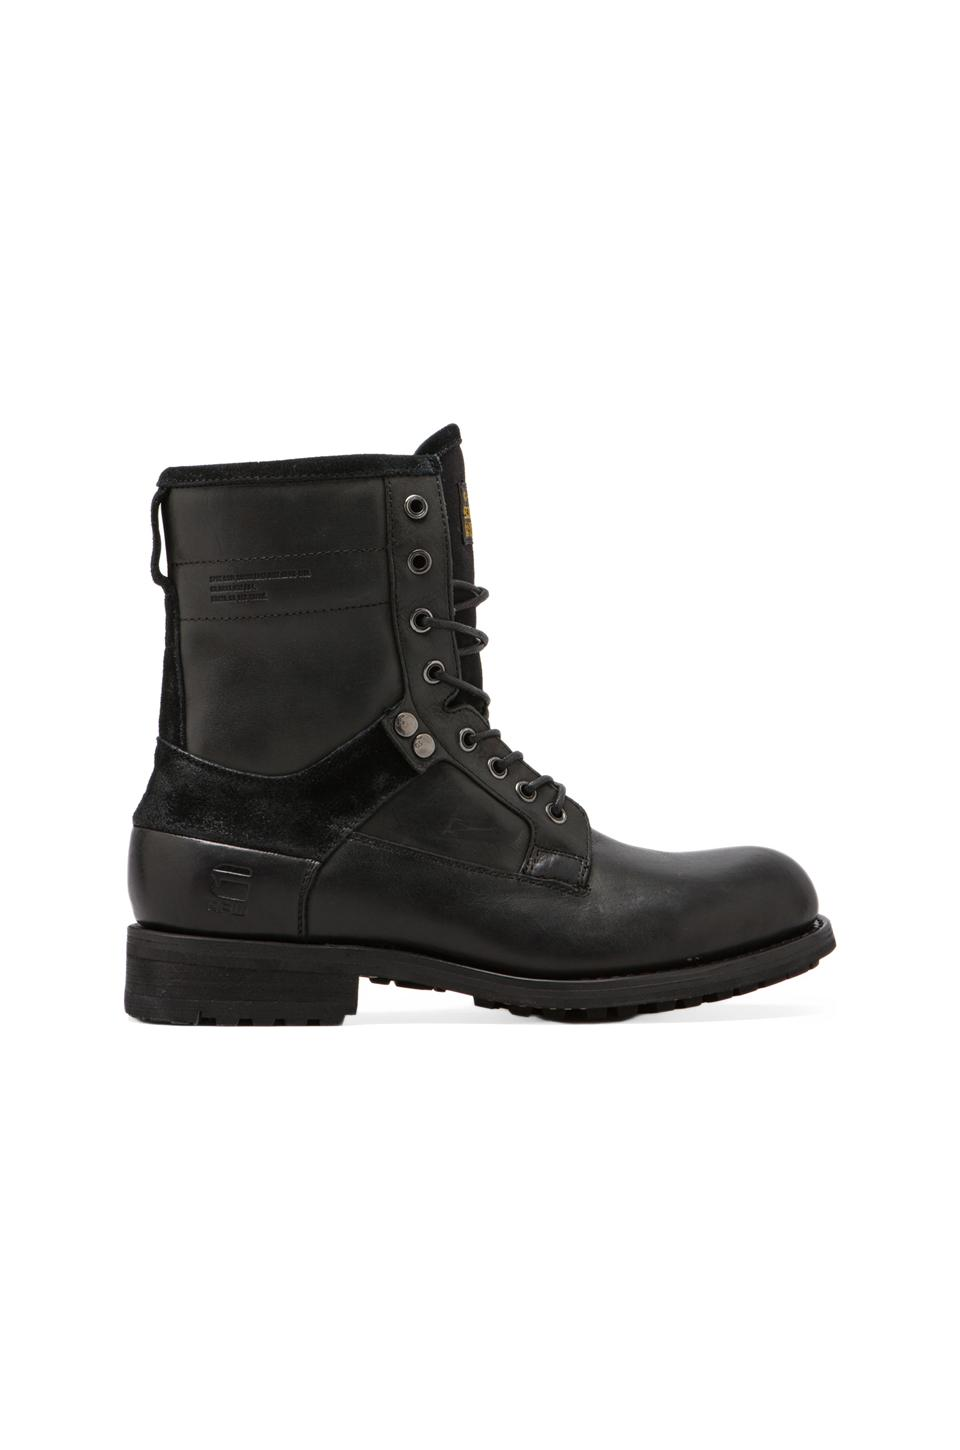 G-Star Patton IV Marker Mix Boot in Black Leather & Textile